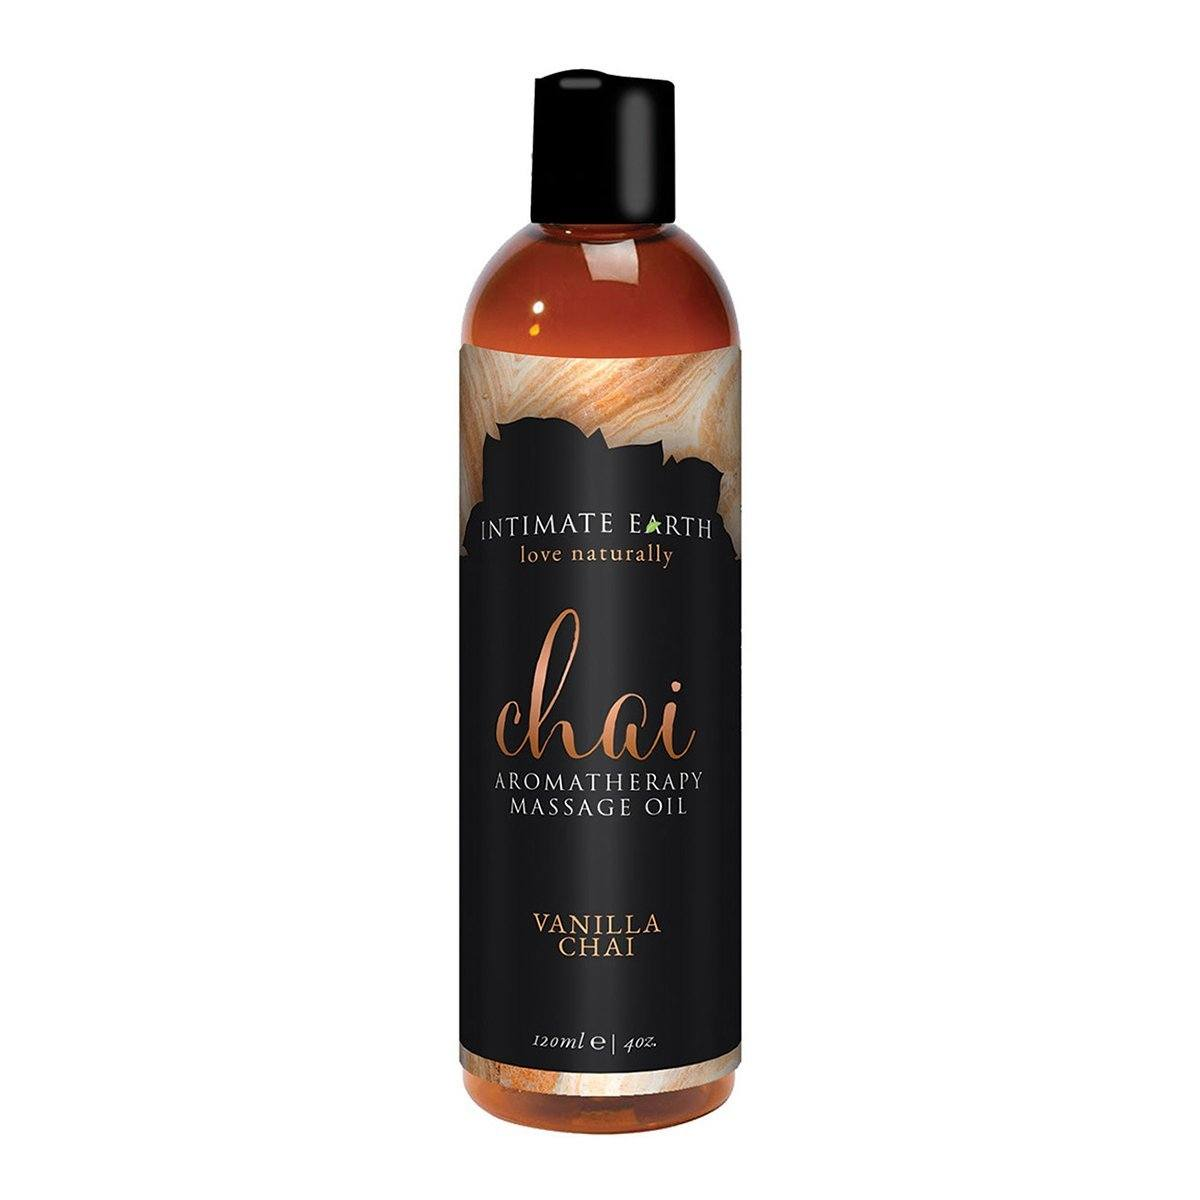 Intimate Earth Massage Oil - Chai Oils & Cream Intimate Earth Default Title